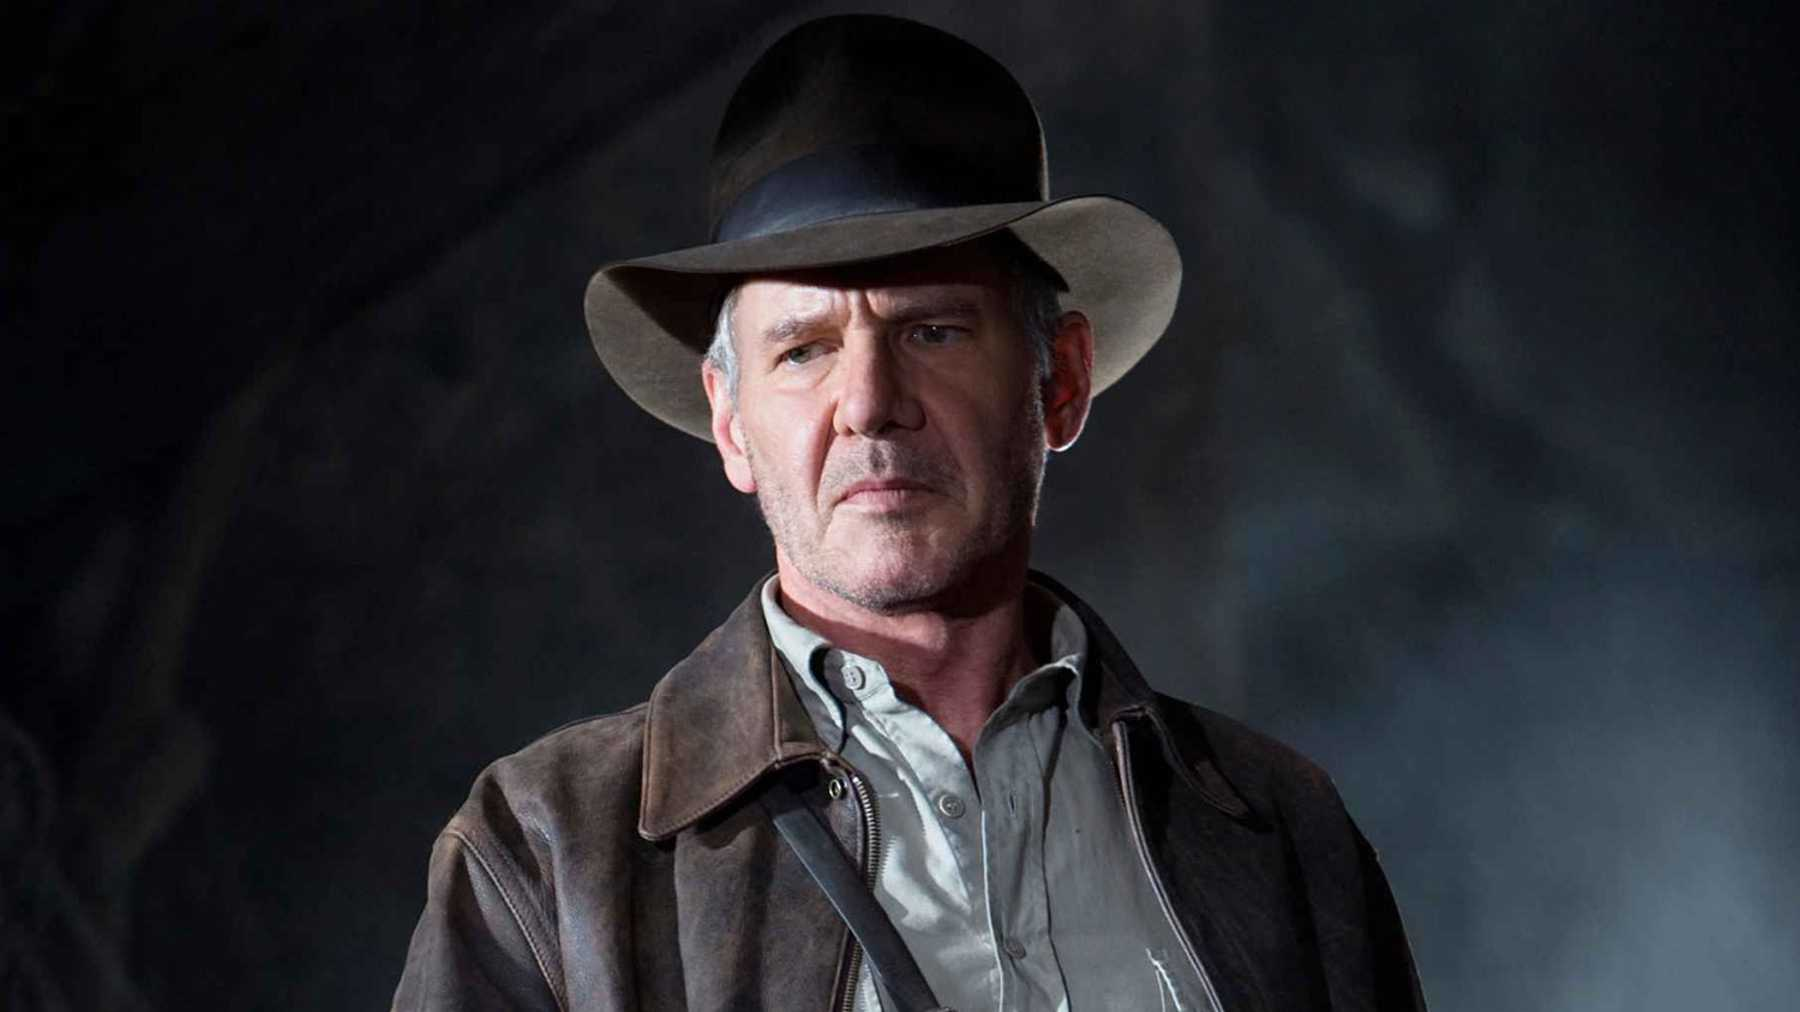 Indiana Jones 5 Update: Why Writer David Koepp Left the Movie